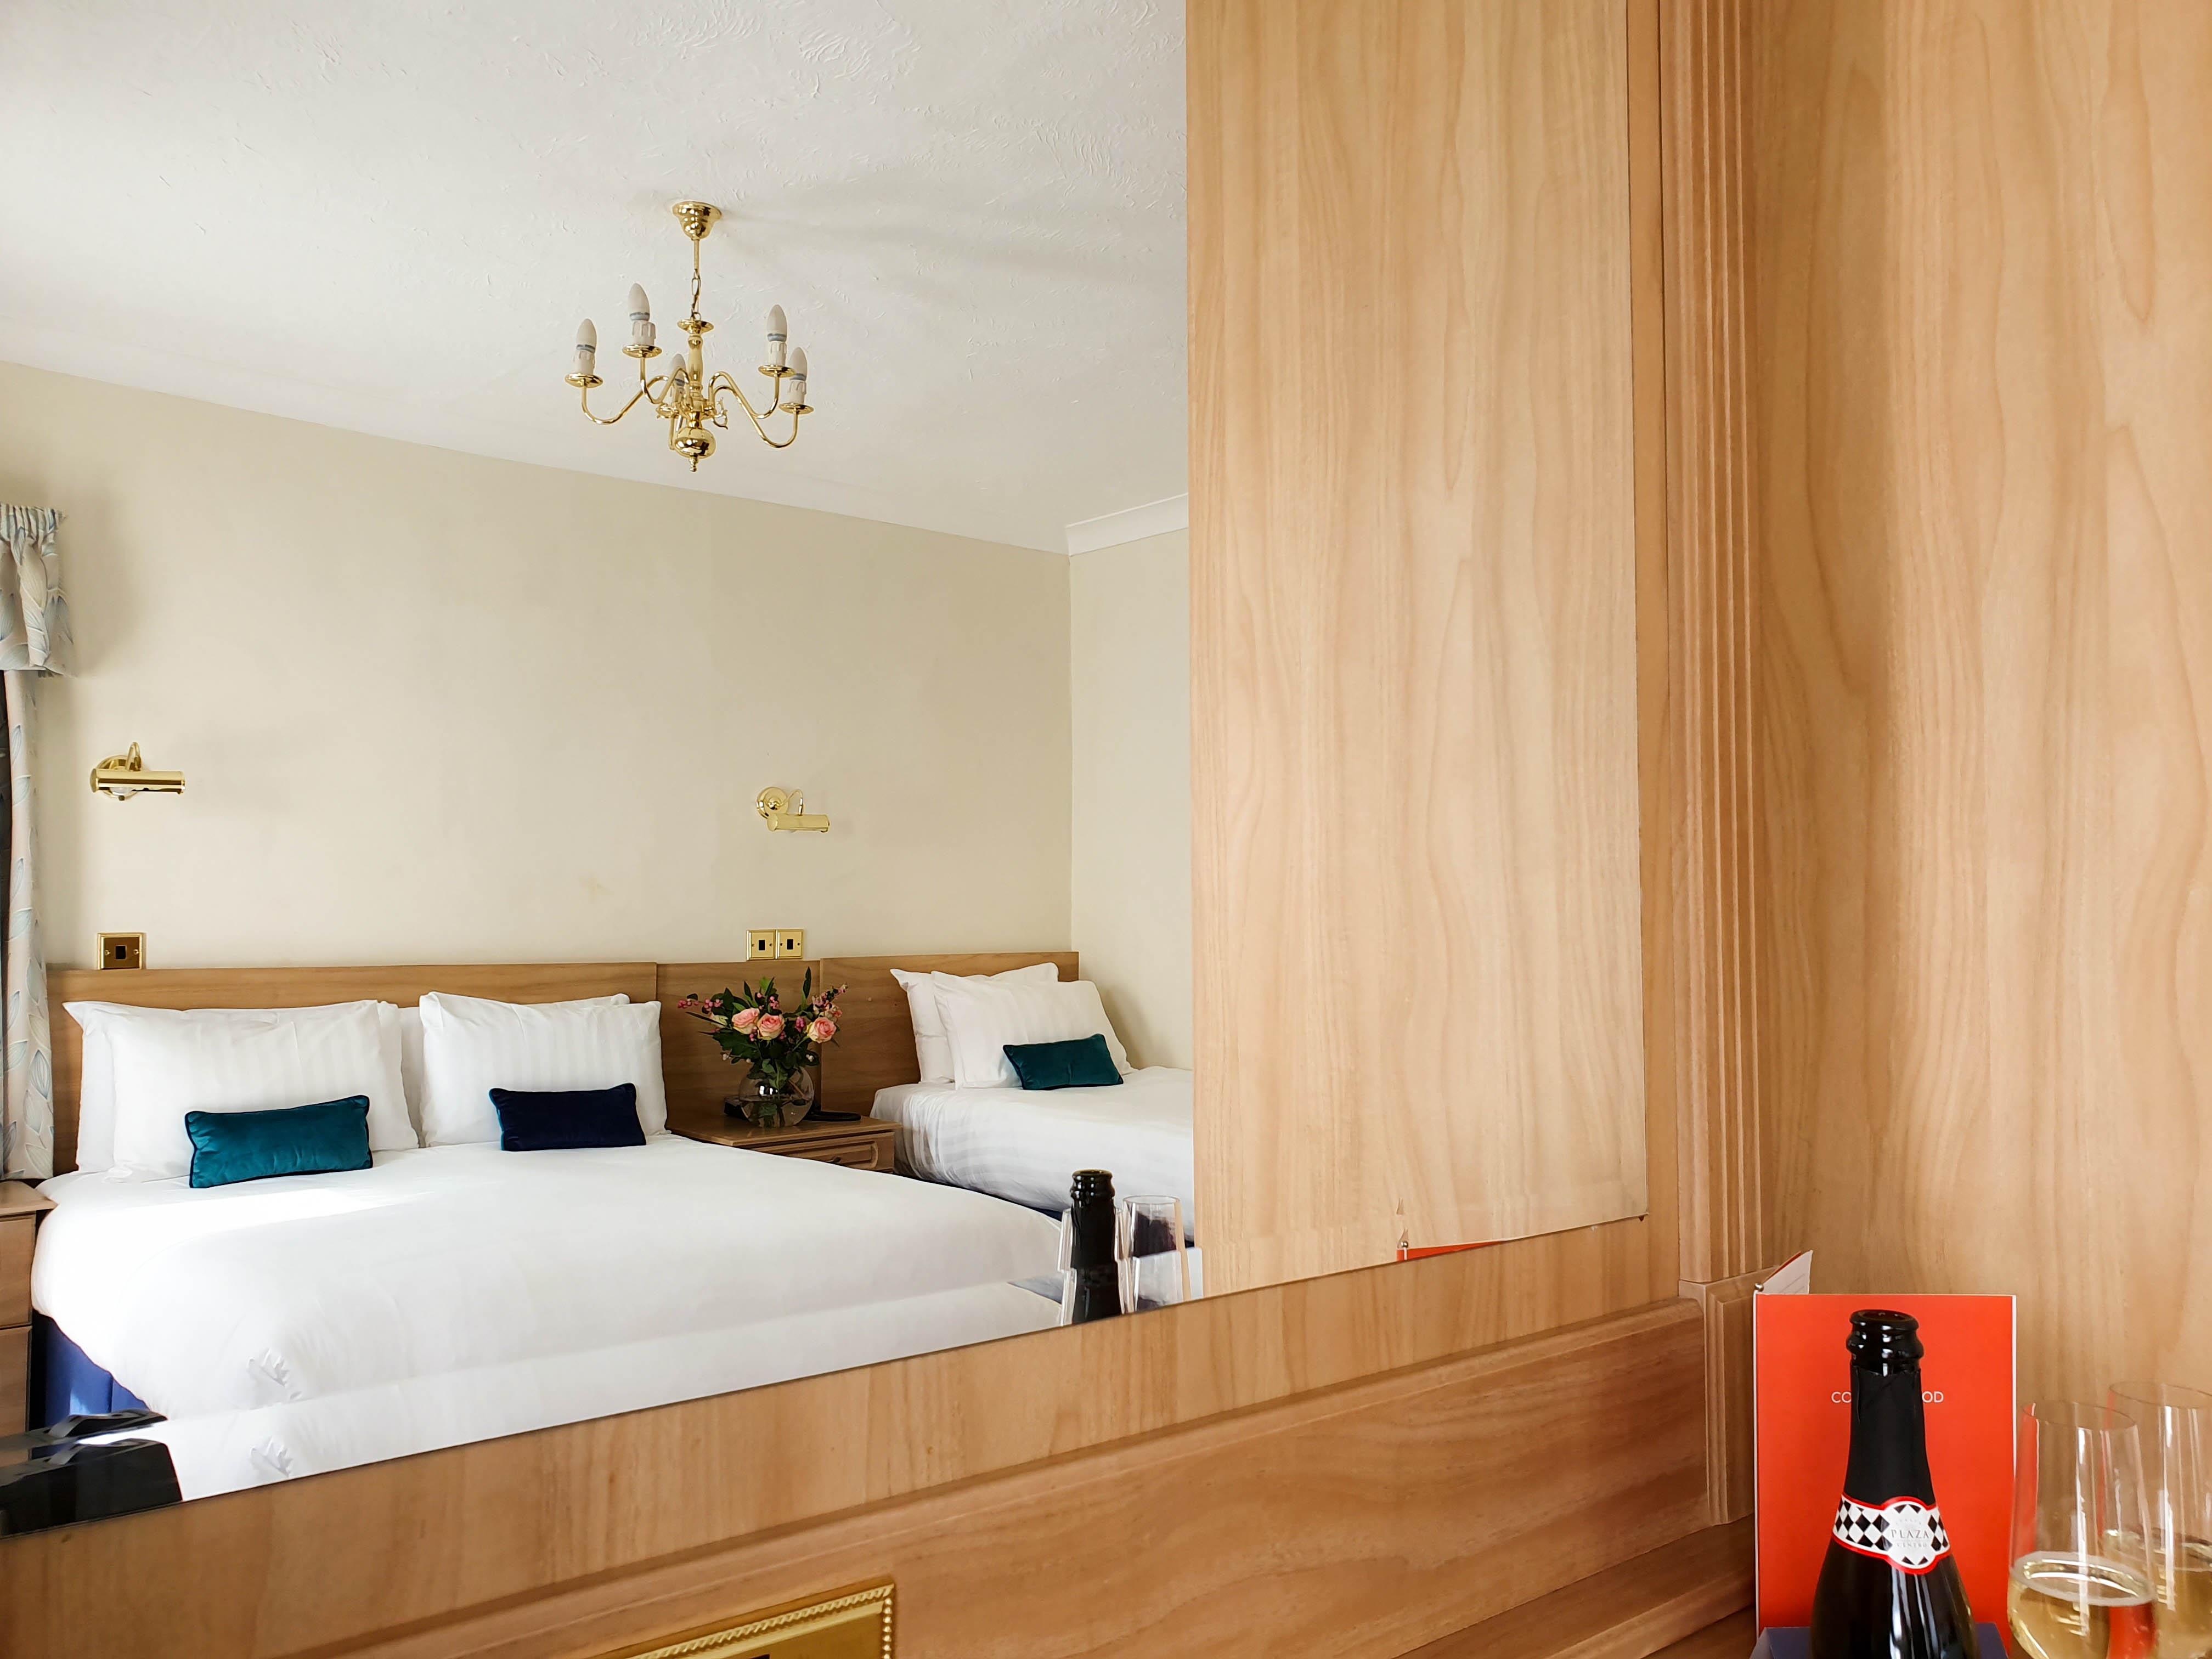 Family Hotel Room In Bournemouth